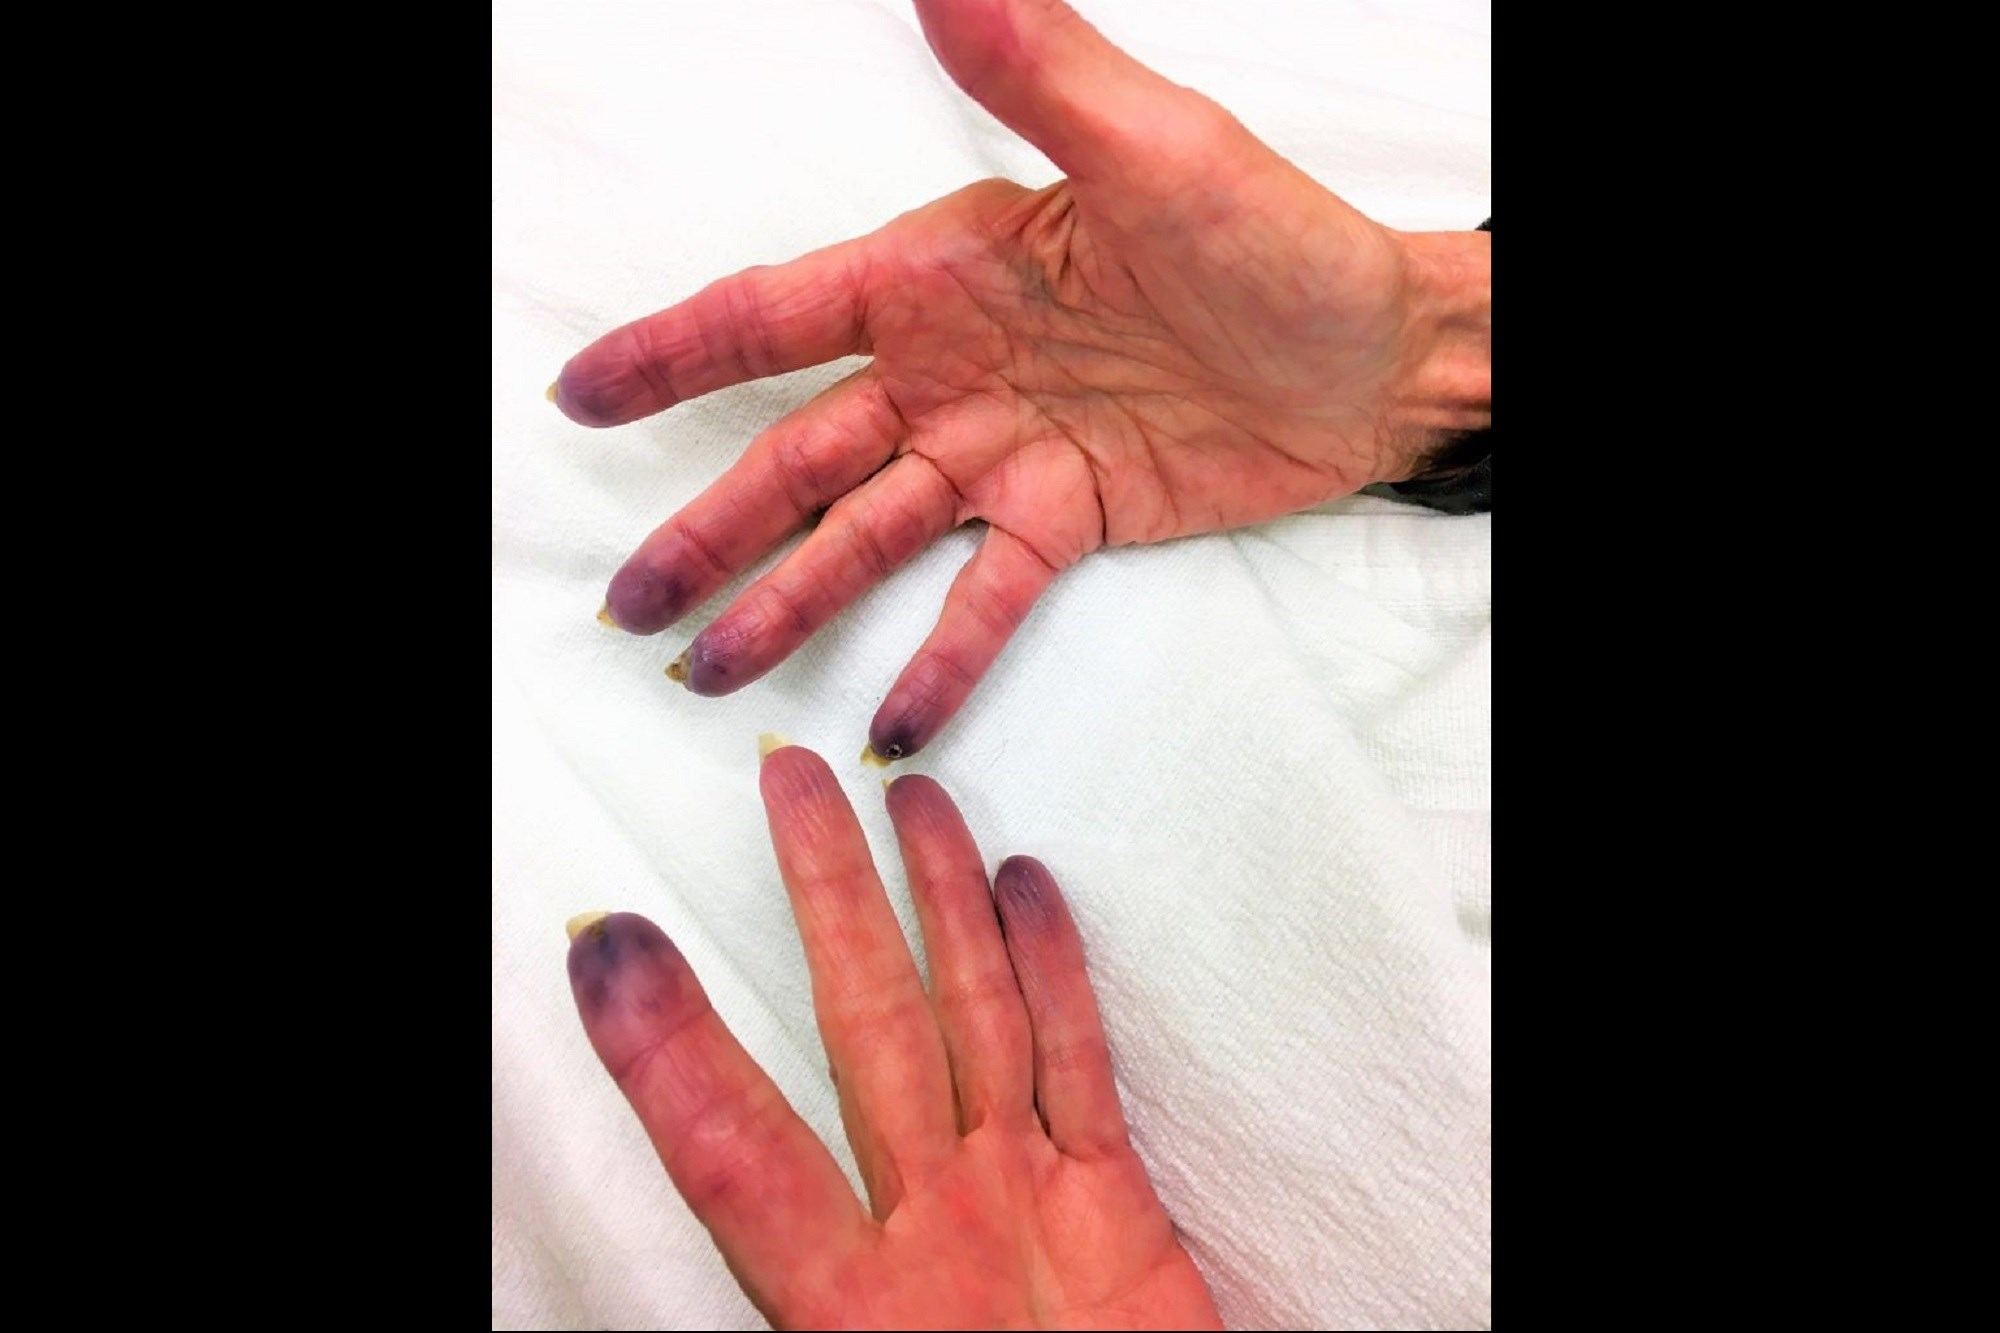 Case Study: Purple Fingertips in an Elderly Woman